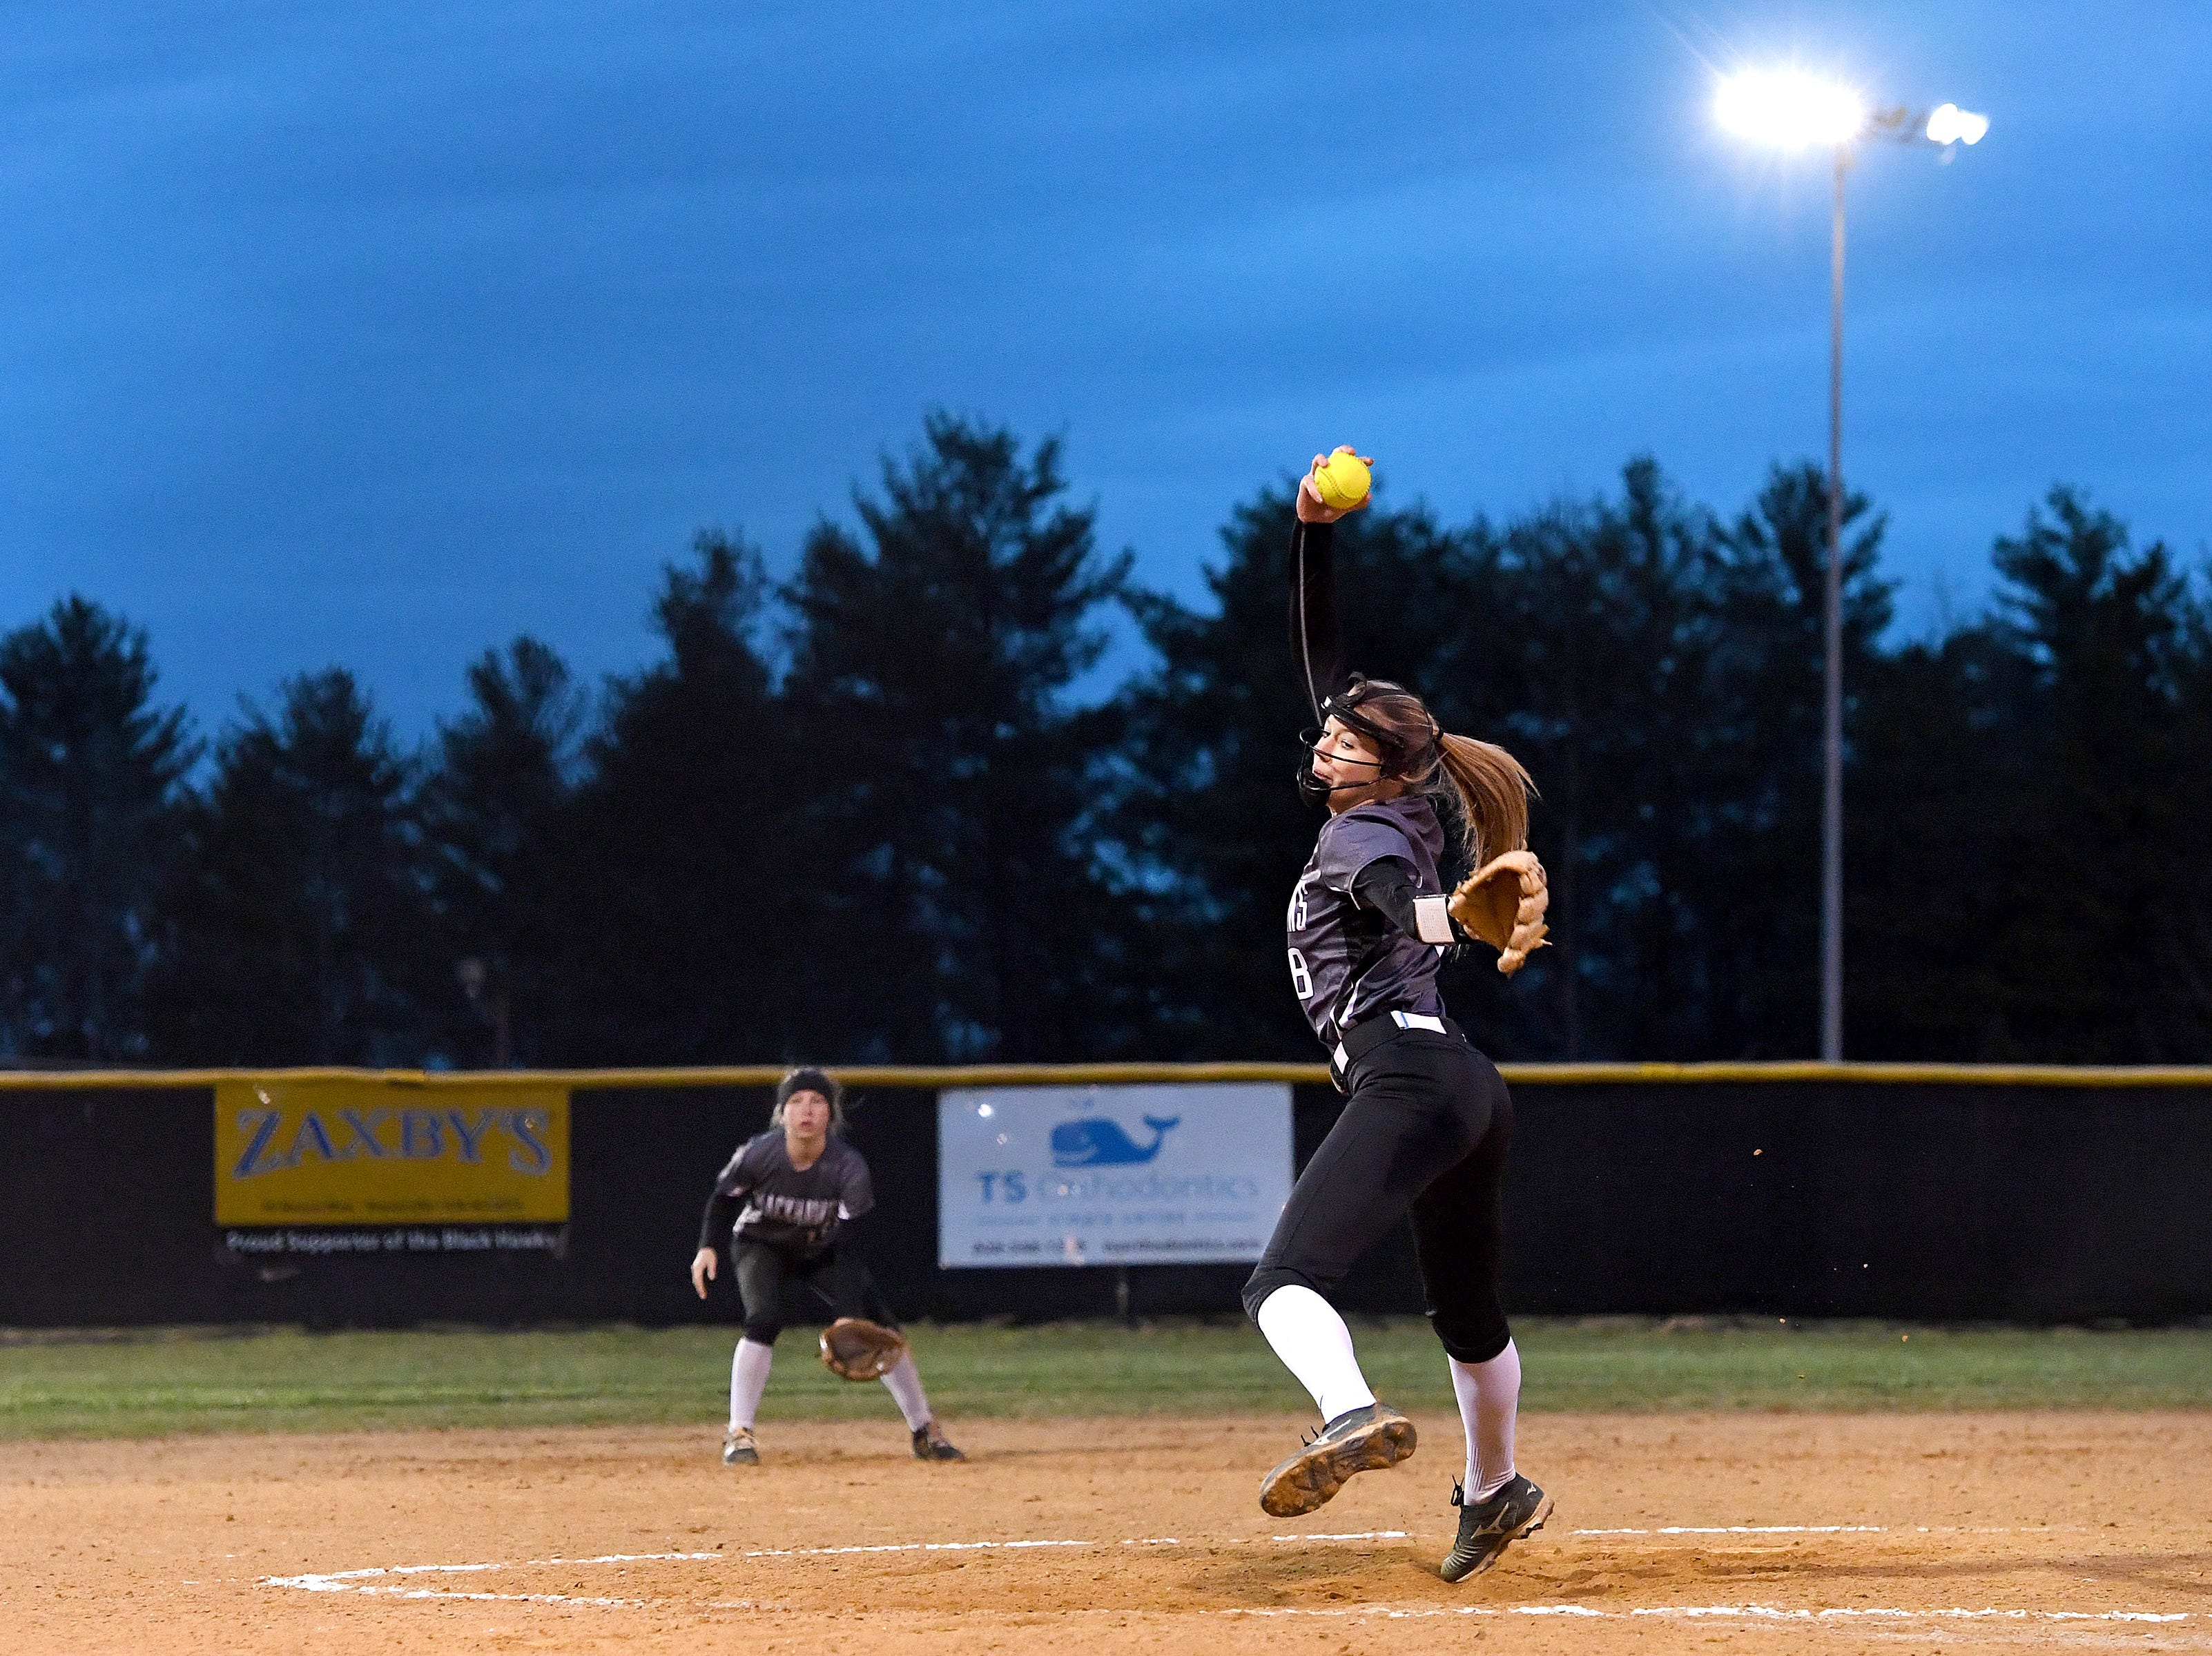 North Buncombe's 8 delivers a pitch against Roberson during their game at North Buncombe High School on March 7, 2019. North Buncombe defeated Roberson 3-1.